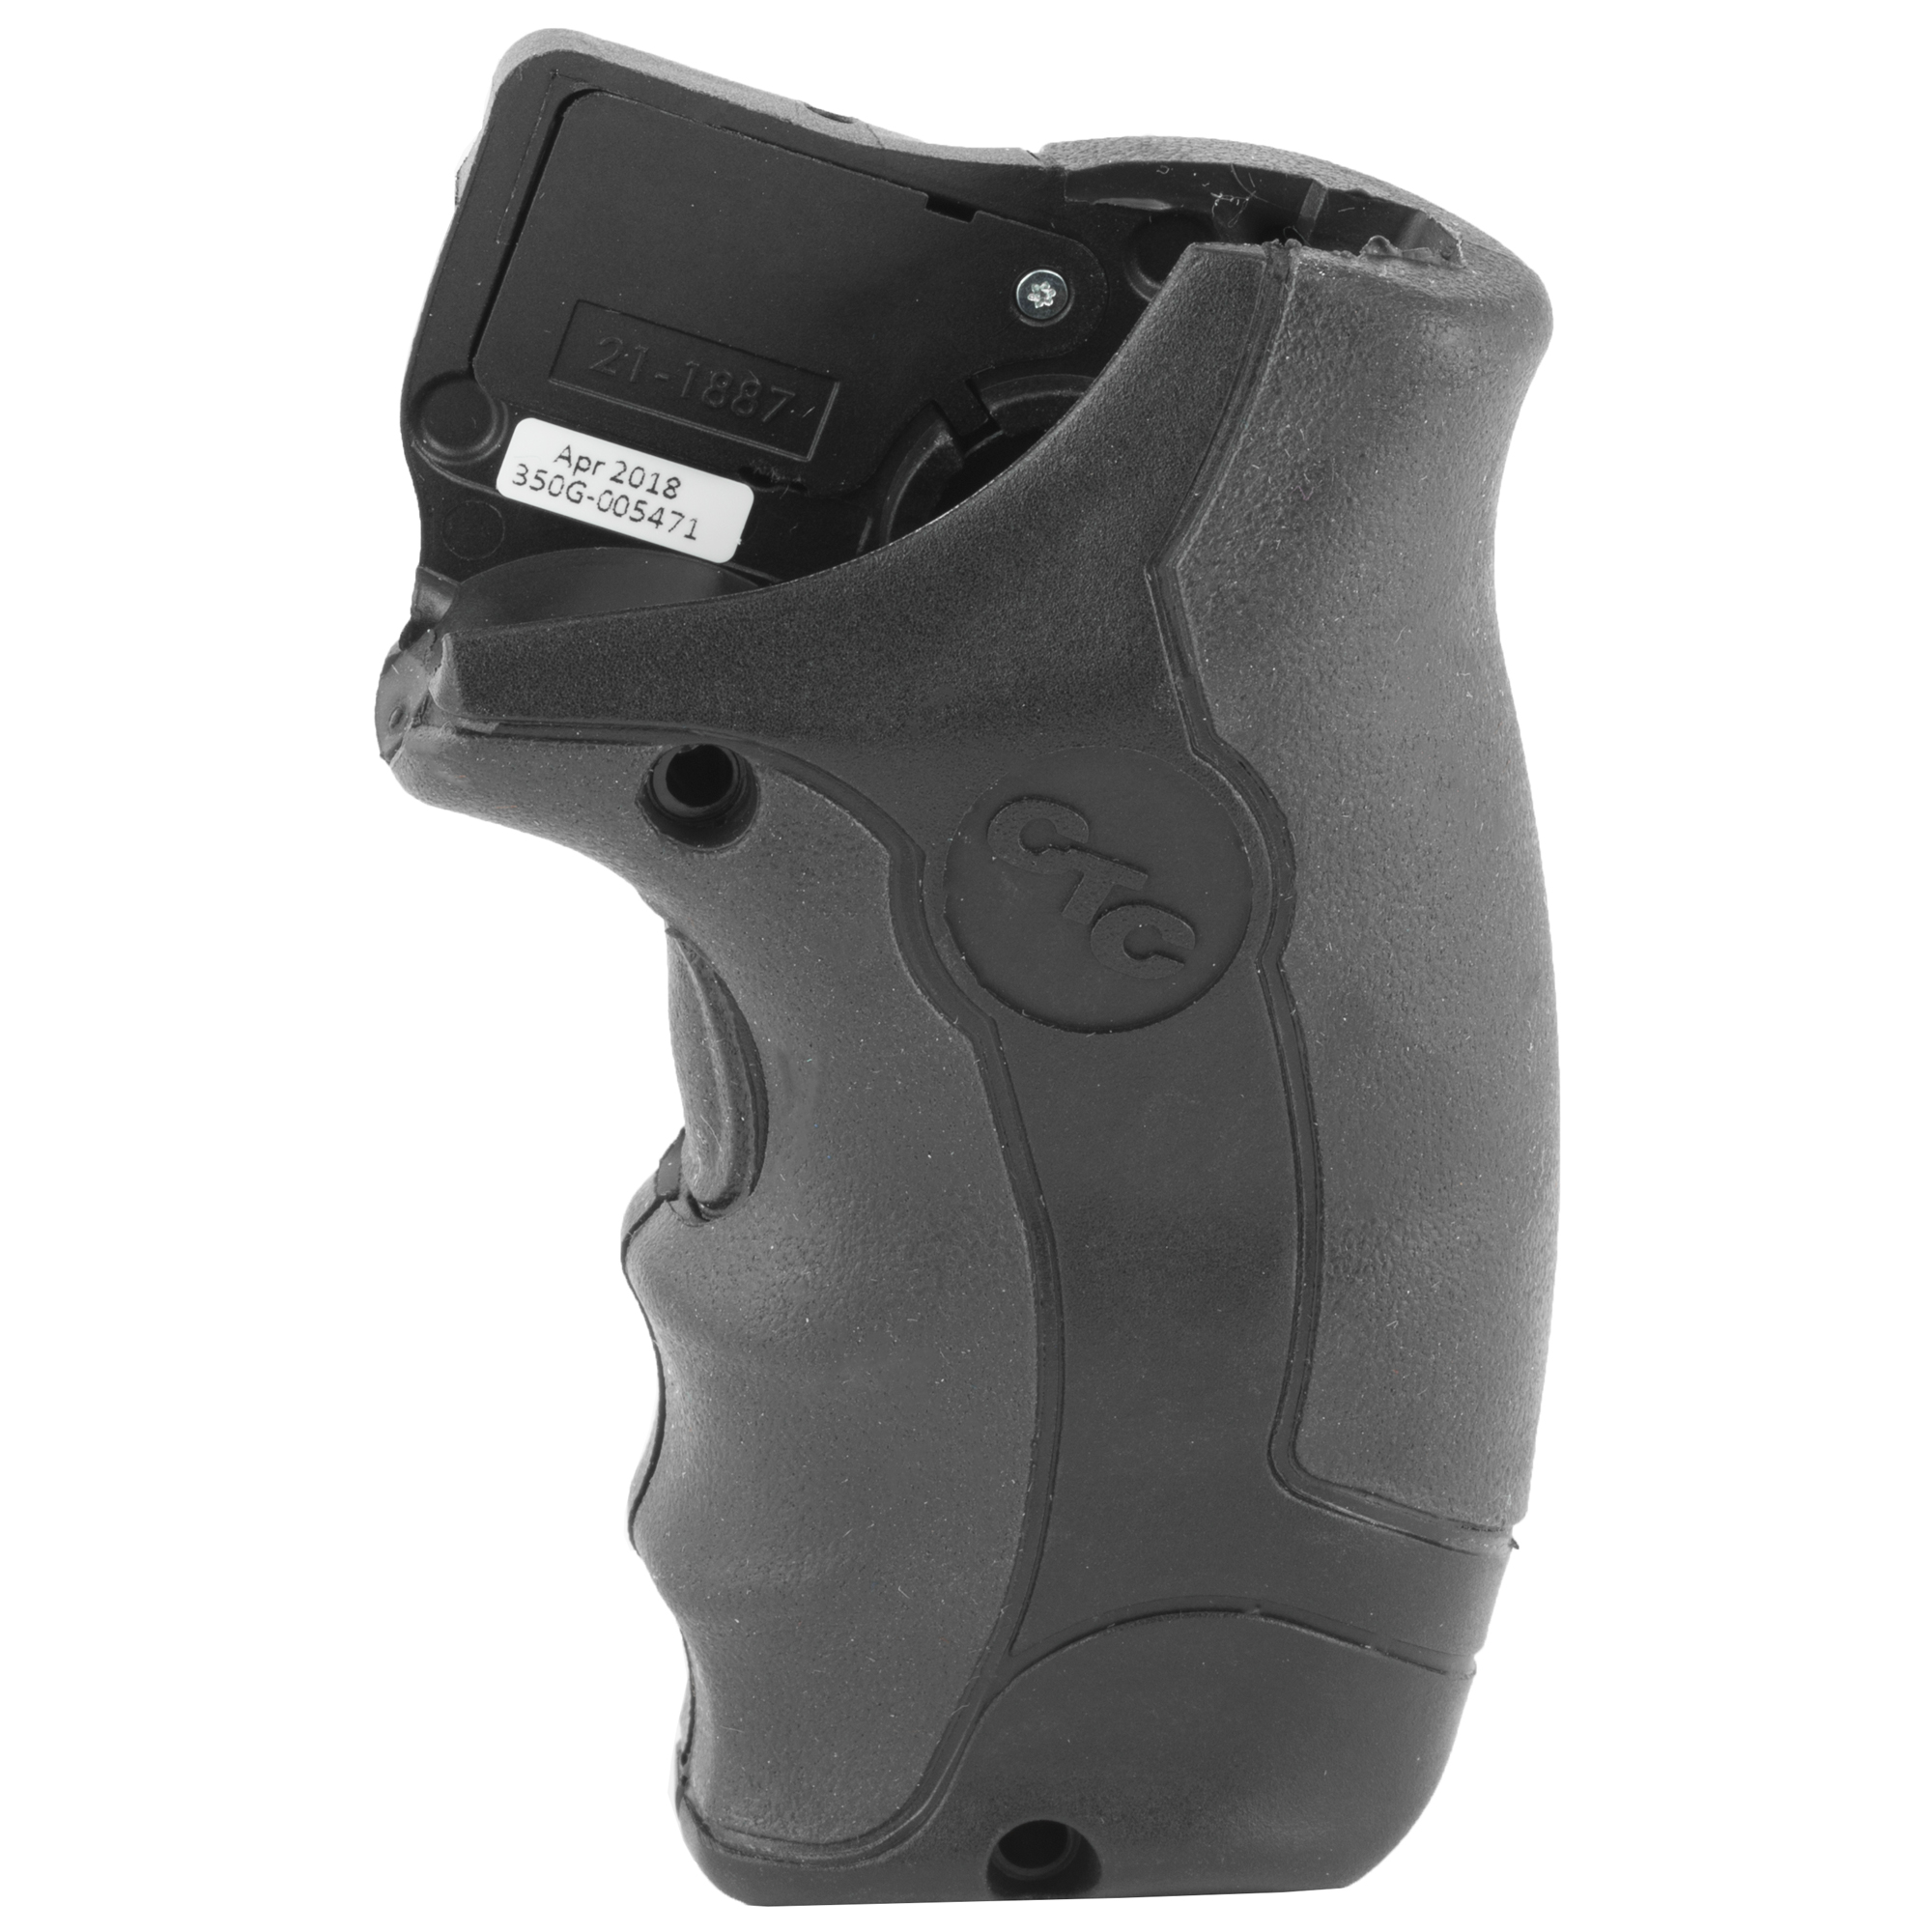 """LG-350G Green Lasergrips(R) are an enhanced laser sighting option for Smith & Wesson J-Frame (Round Butt) Revolvers offering excellent comfort for shooters. This model features a front laser activation button"""" and boasts over 2 hours of battery life from (4) 2016 Lithium batteries. User-installed in moments by replacing factory grips"""" the unit is completely user-adjustable for windage and elevation. LG-350G Green Lasergrips feature the Crimson Trace ShockStop(TM) system"""" which couples soft"""" anti-vibration material and a cushioned grip to reduce recoil while increasing shooter comfort and accuracy."""